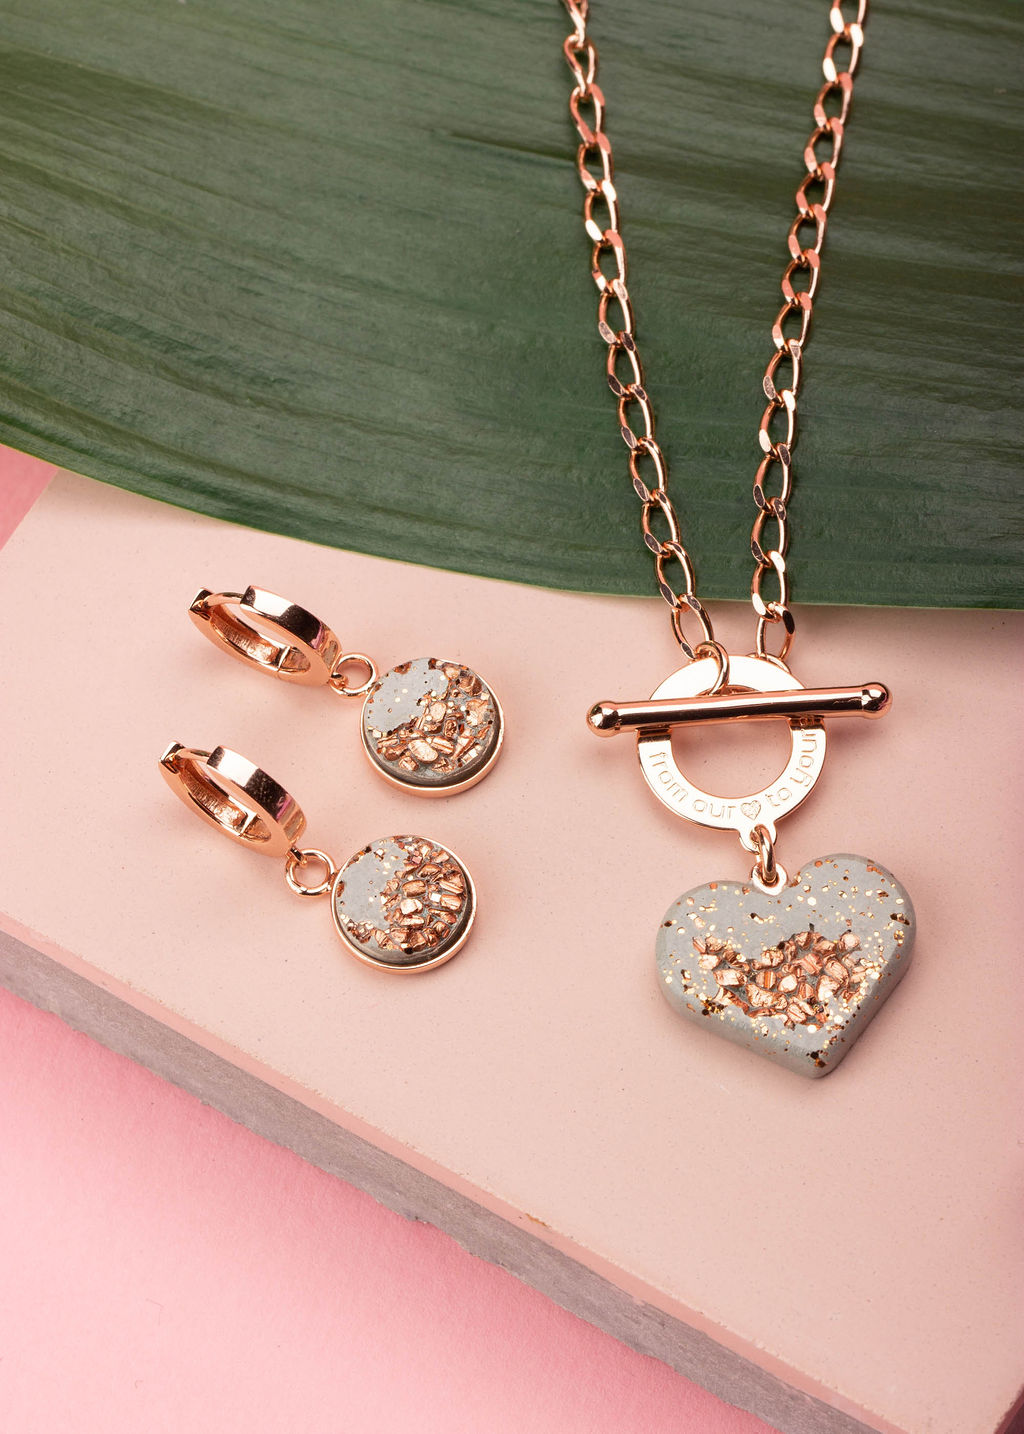 Pink Styled Jewelry Shoot